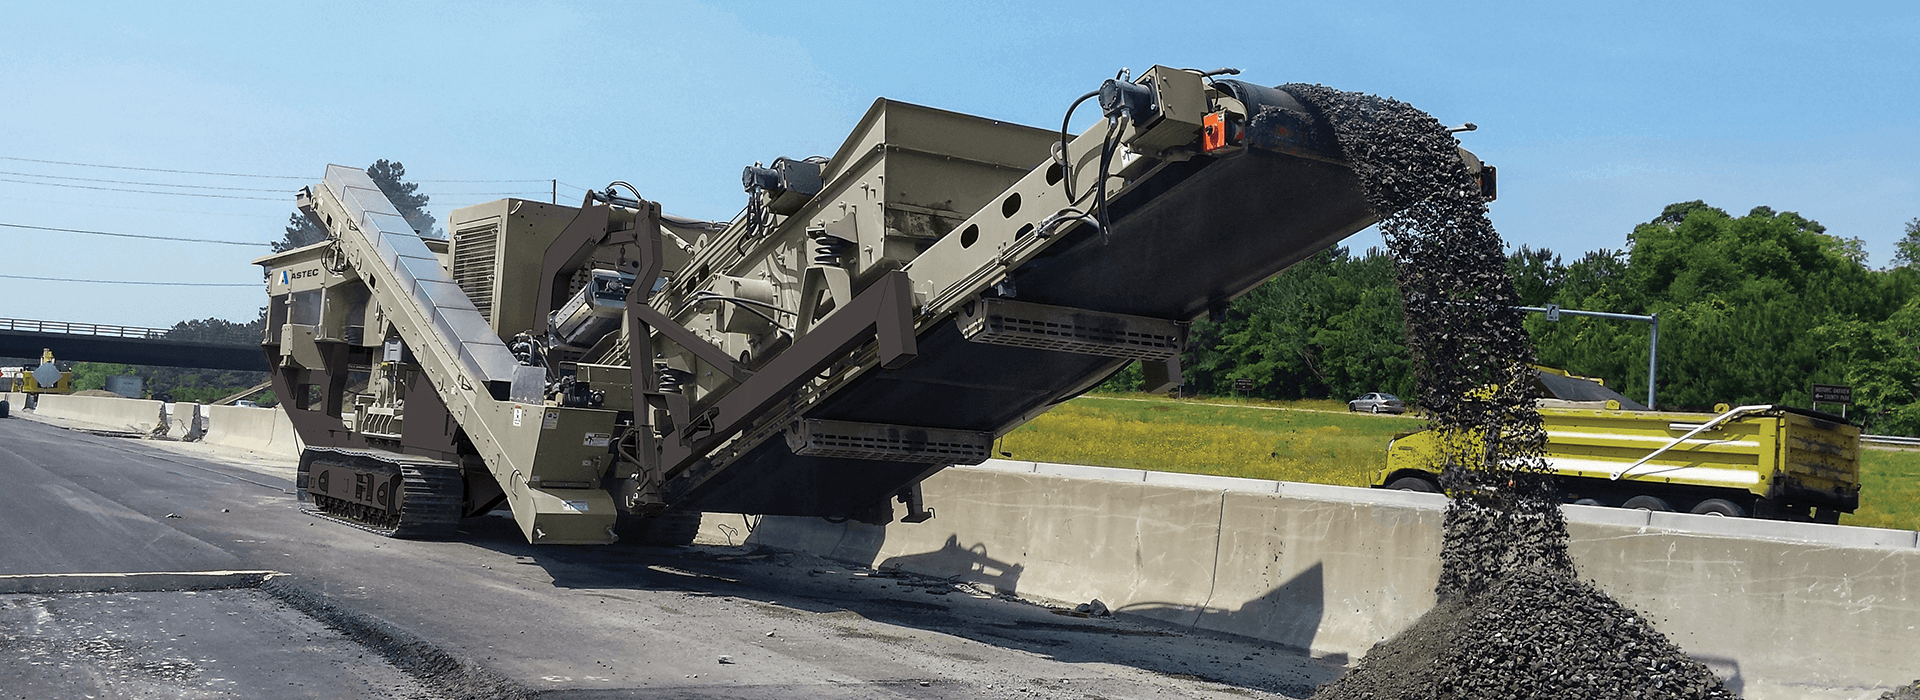 Mobile track-mounted impactor crushing and recycling asphalt from a highway.